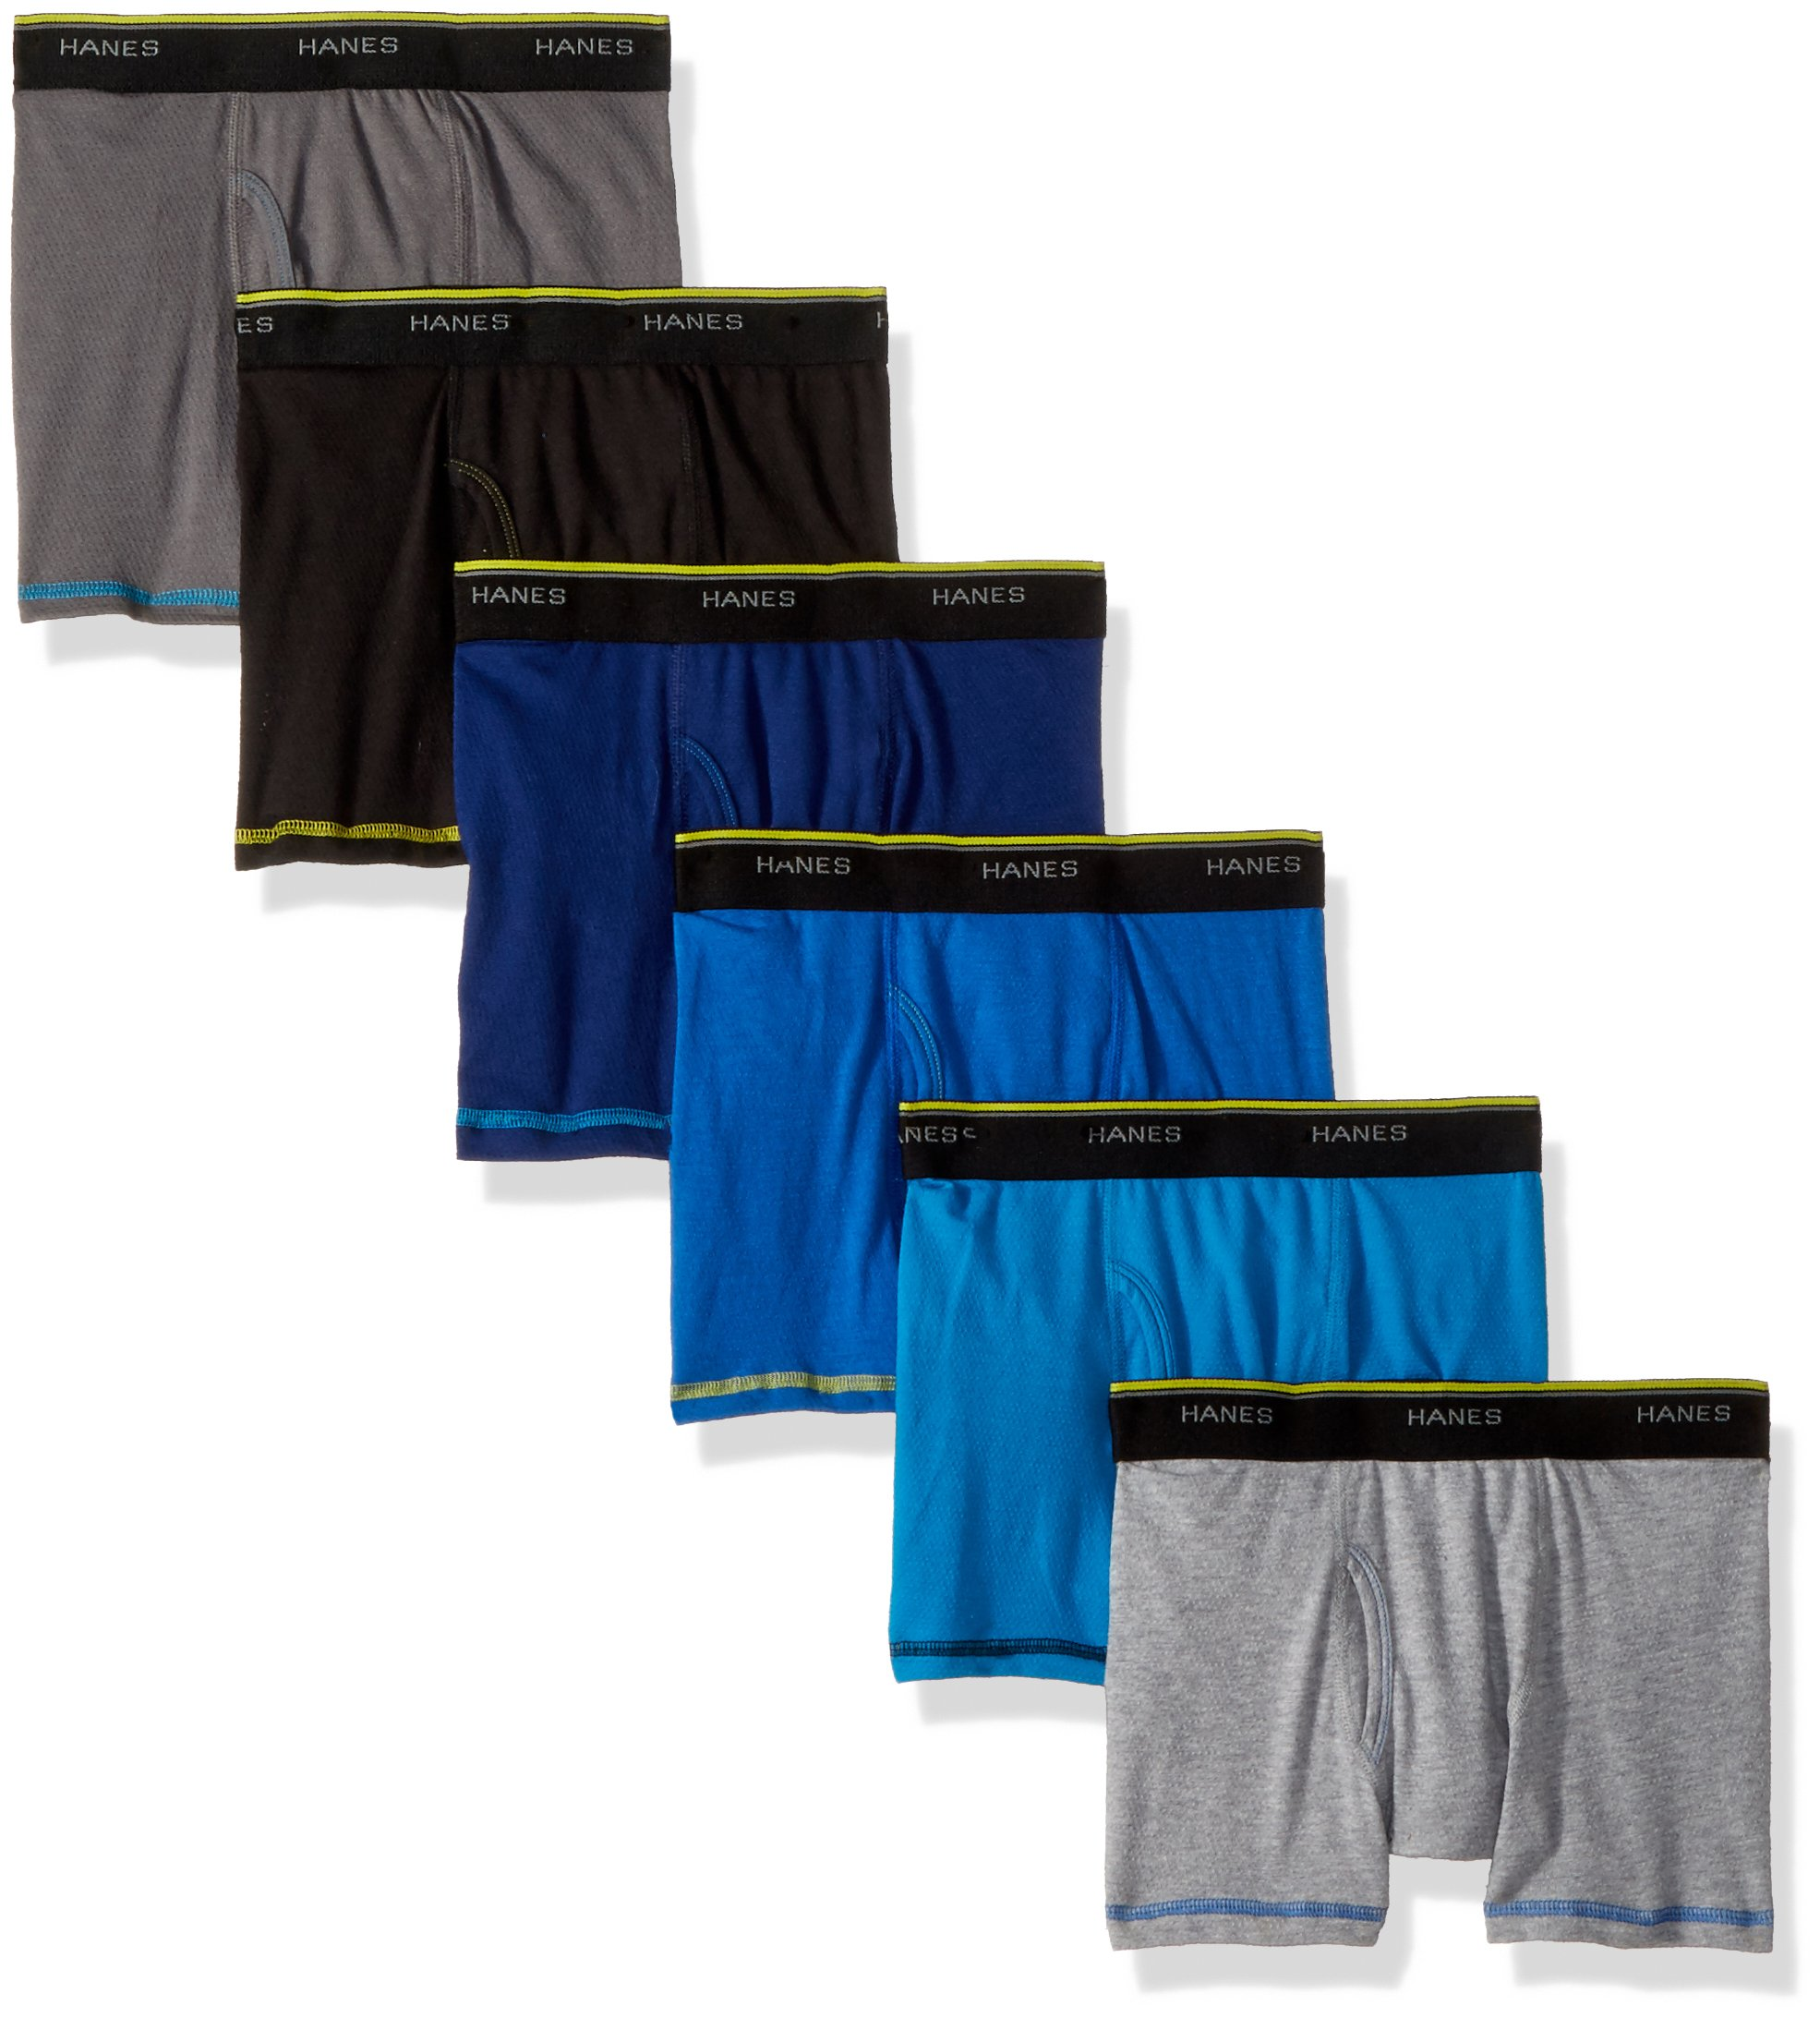 Hanes Boys' Cool Comfort Breathable Mesh Boxer Brief 6-Pack, Assorted, Large by Hanes